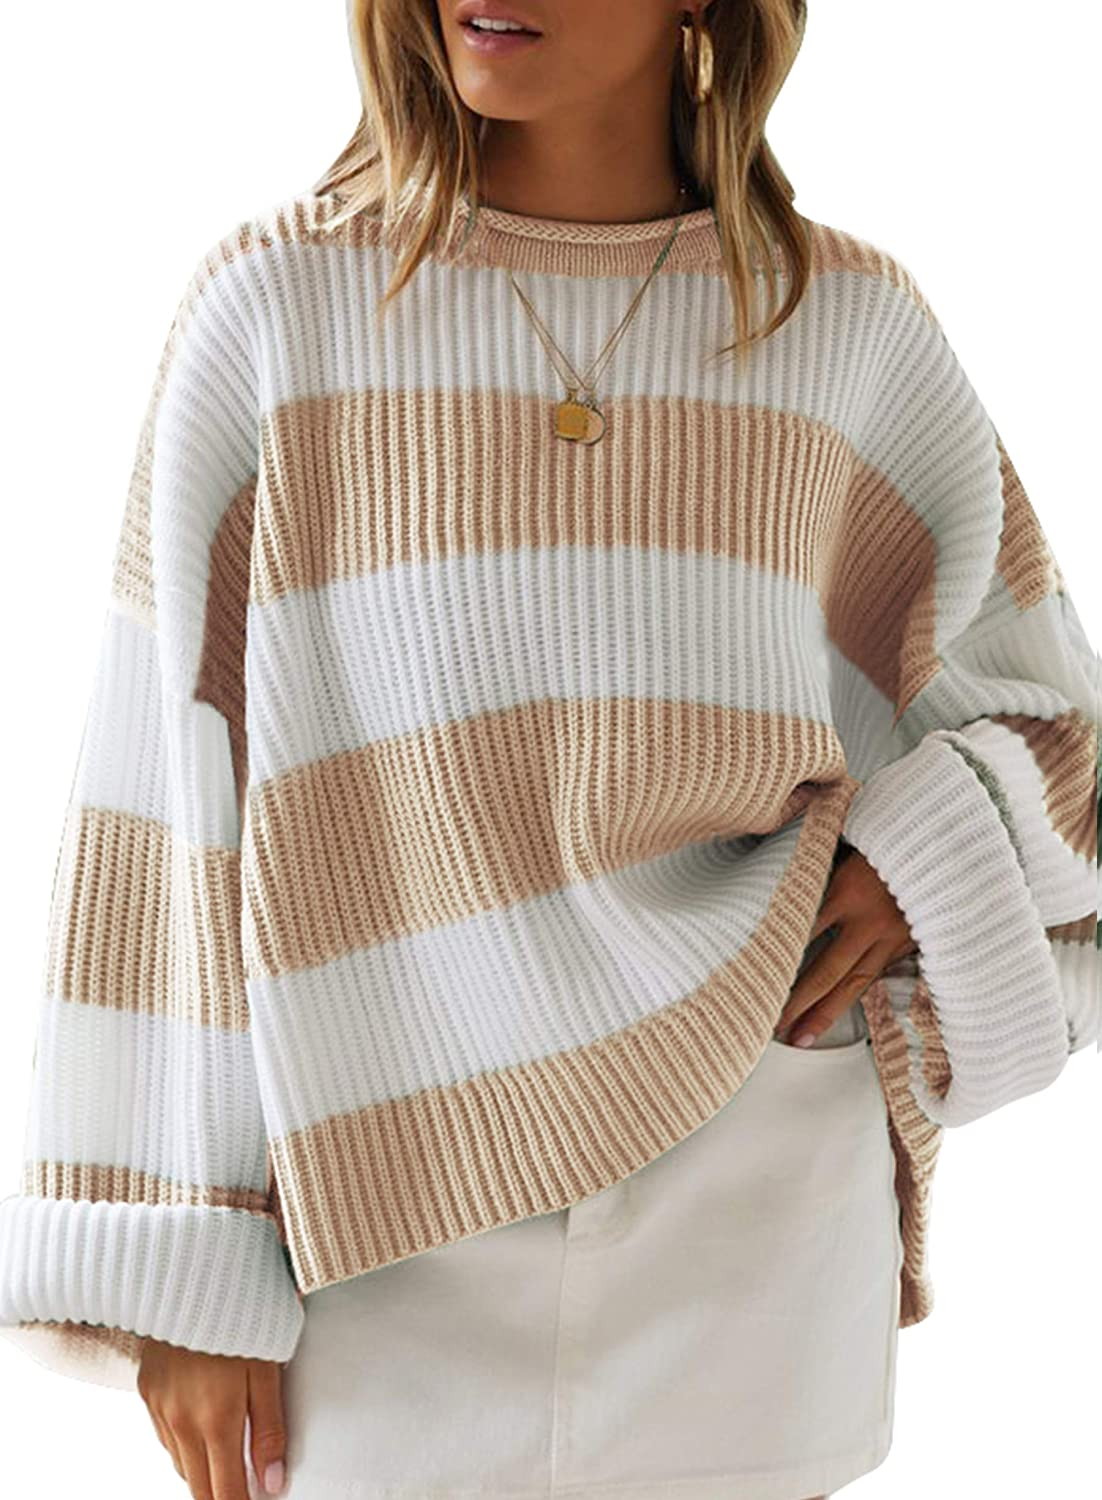 LEANI Womens Sale Memphis Mall Color Block Striped Long Sleeve Oversized Sweaters